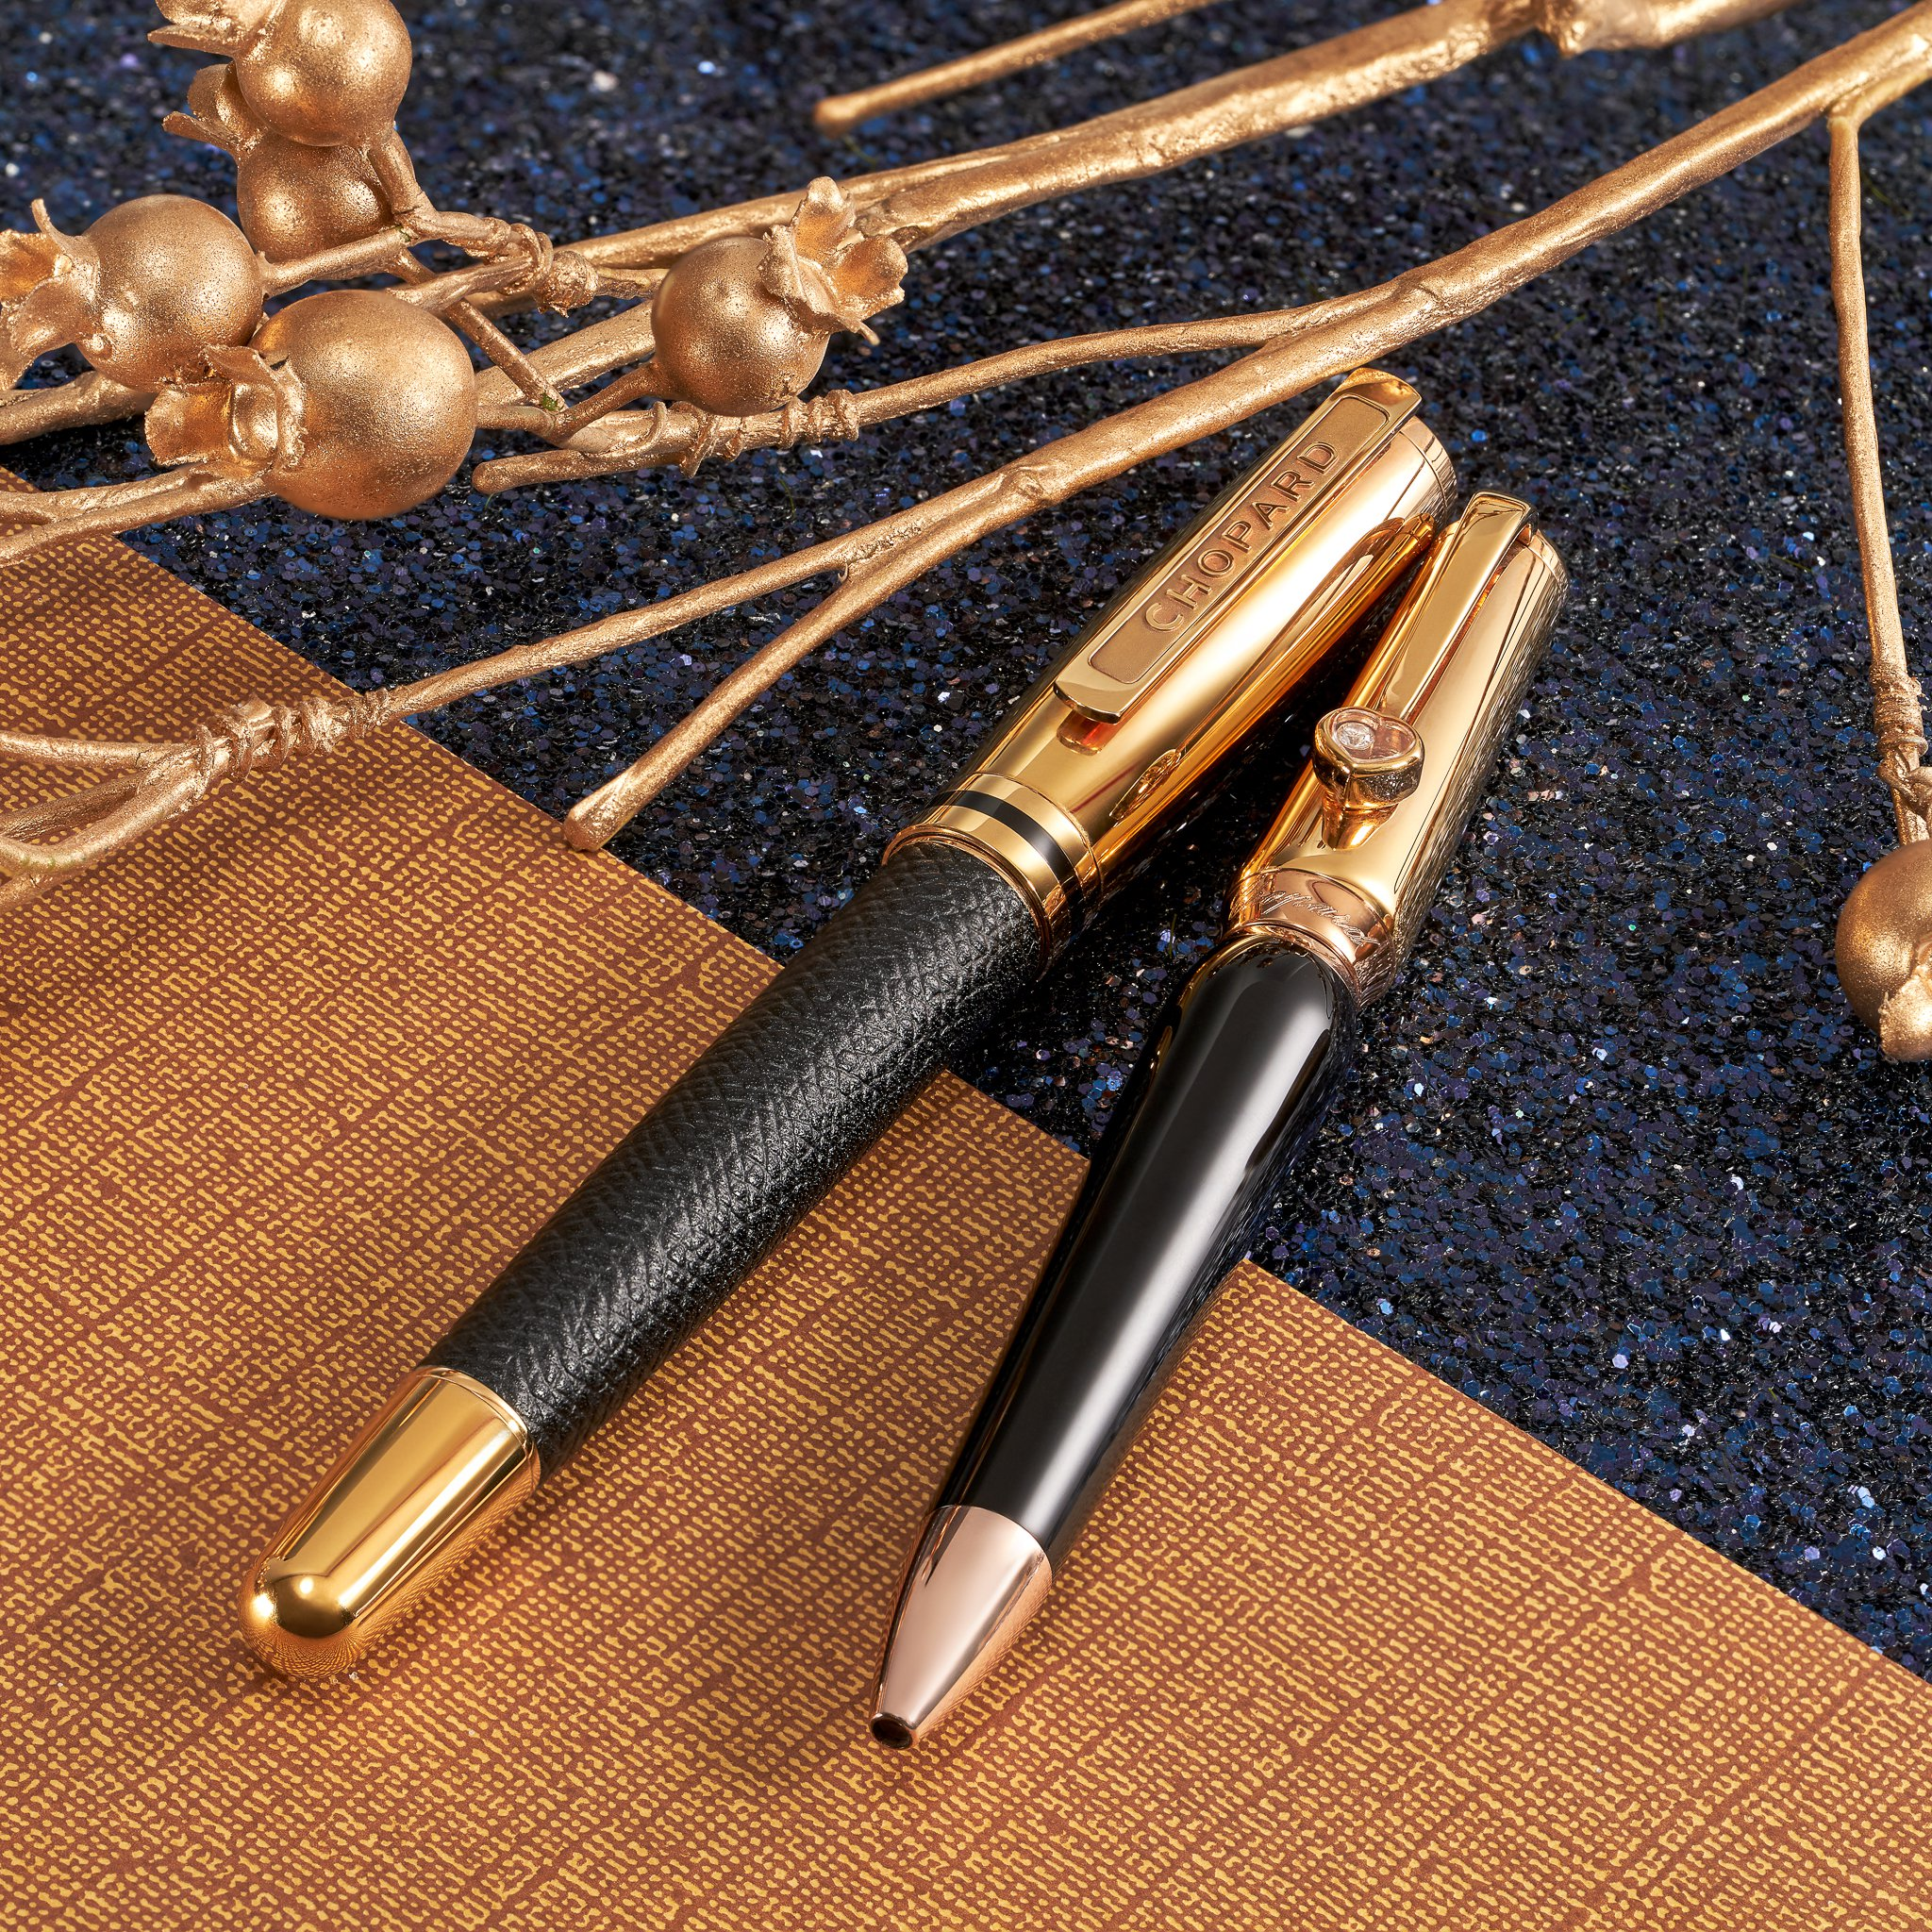 Chopard pens_Ahmed Seddiqi & Sons_ Gifting.jpeg